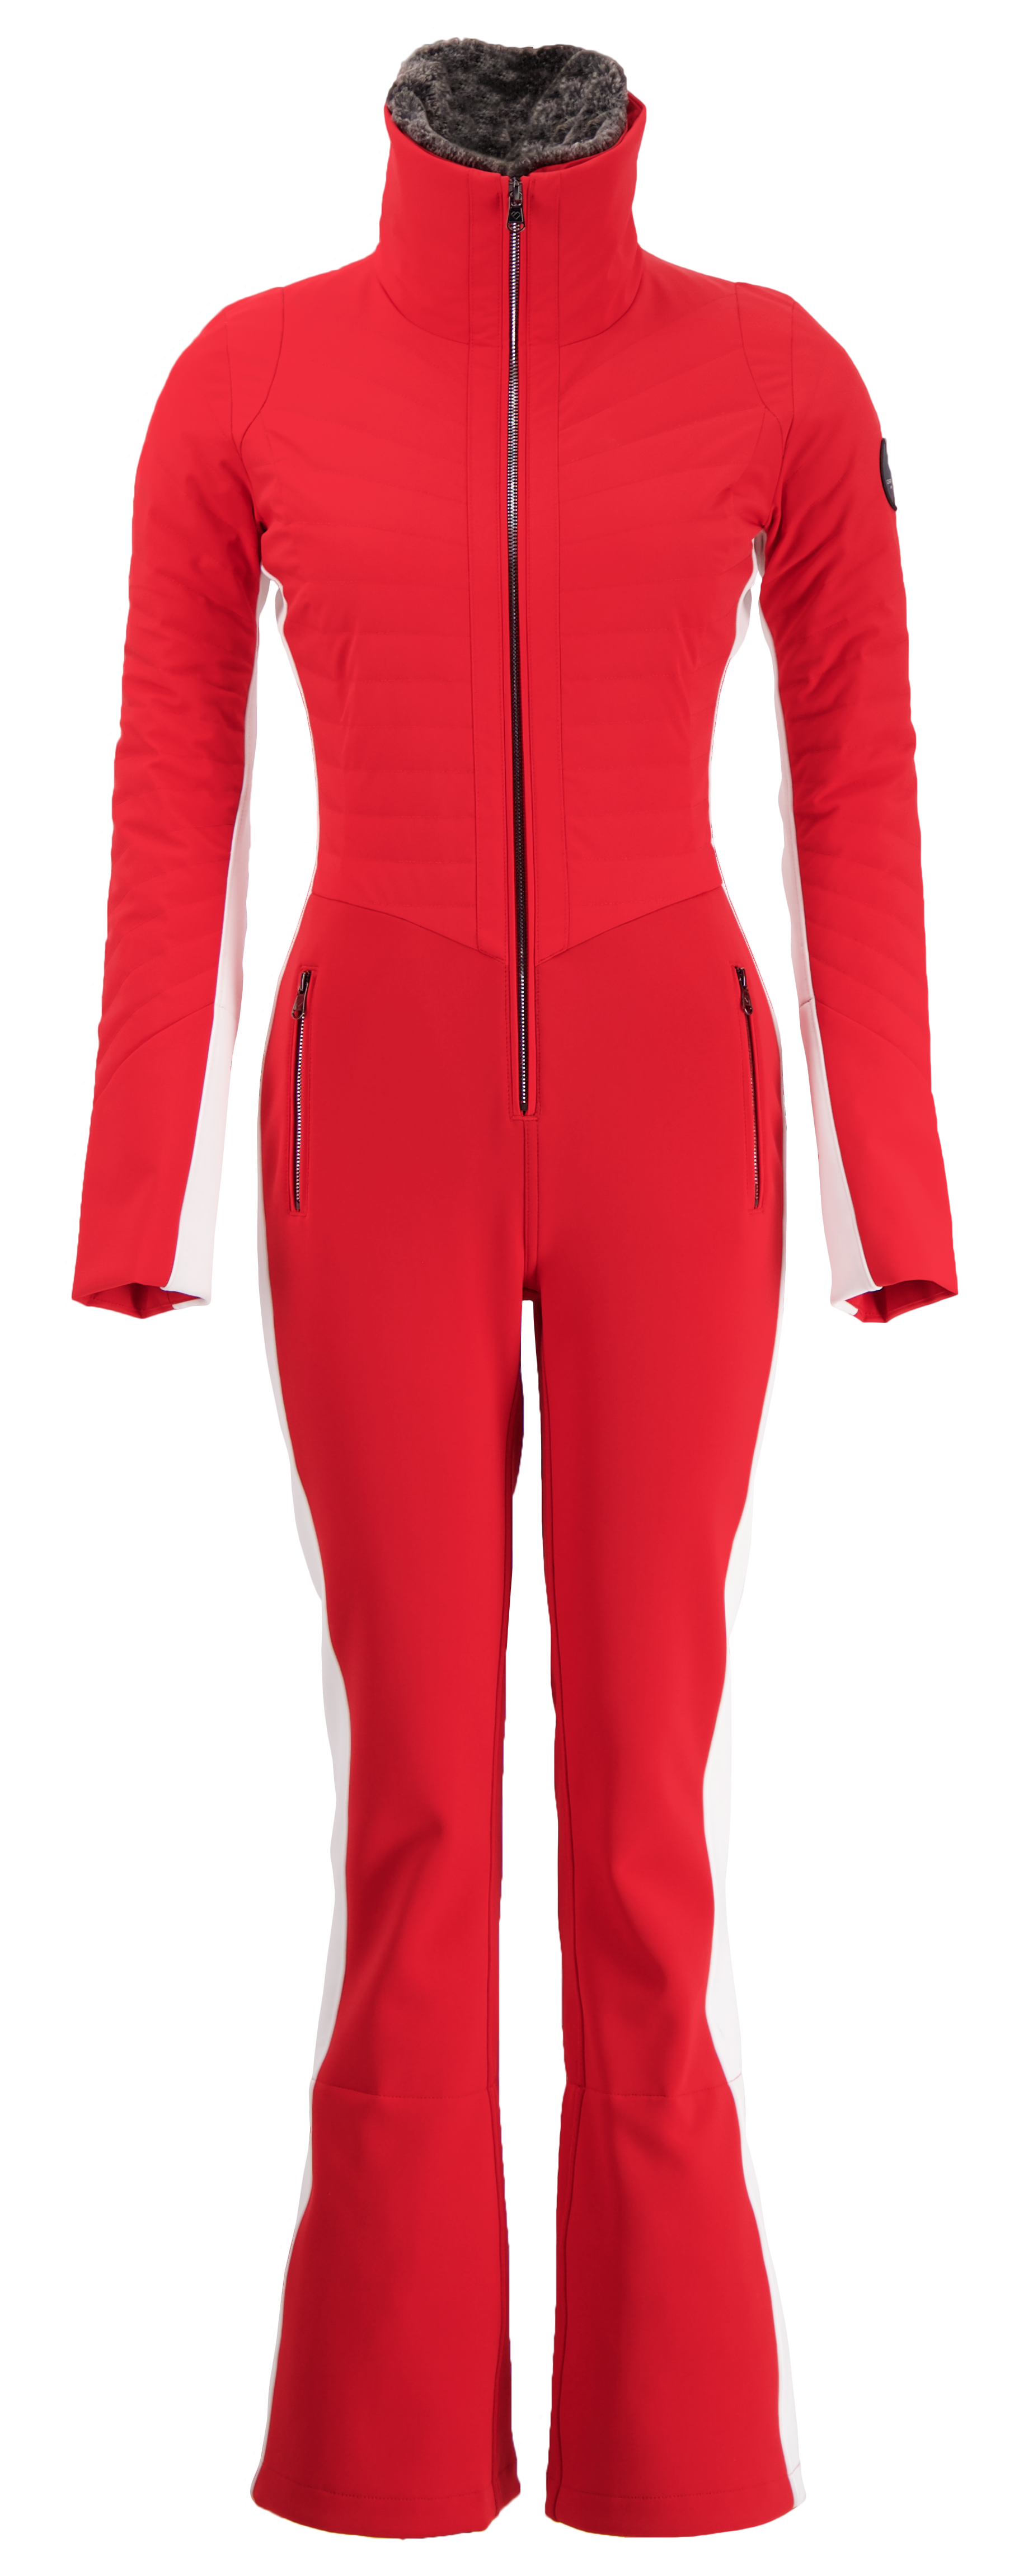 f722537d7 Western Style Choices for Skiers - Ski Mag